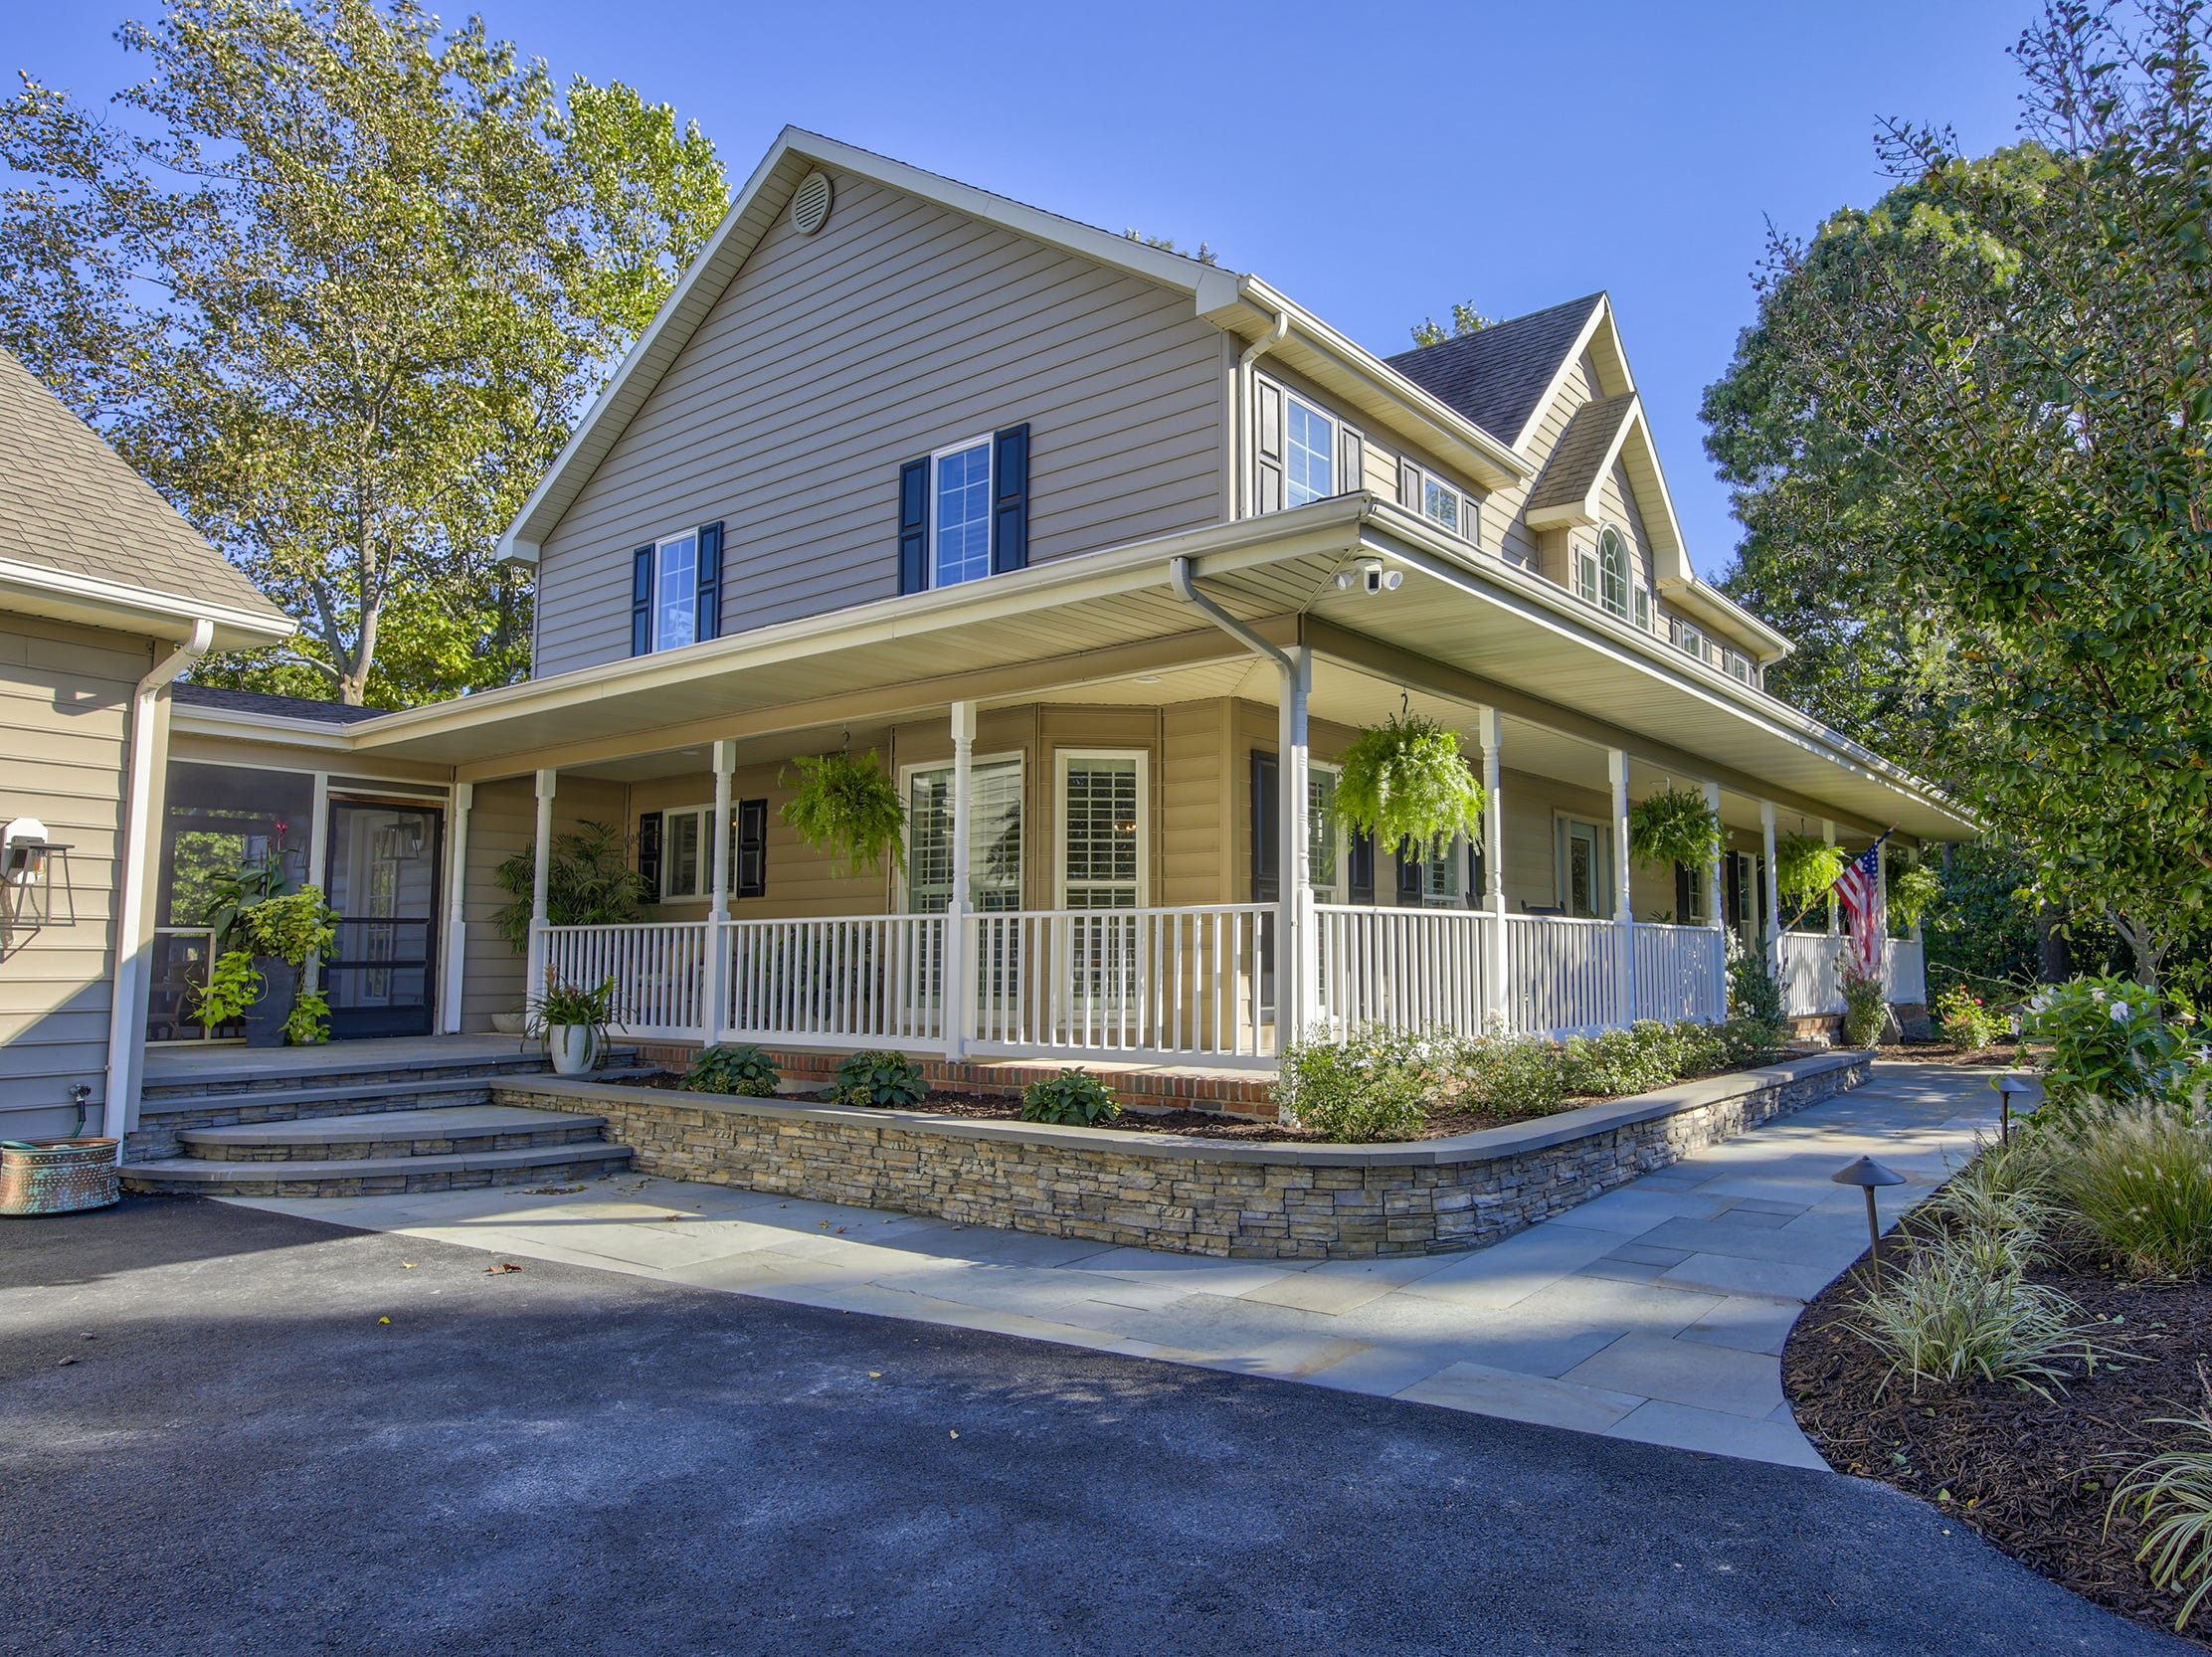 This 5,000-square-foot home at 204 Lakeview Shores in The Glade at  Rehoboth Beach features a front porch and landscaping.